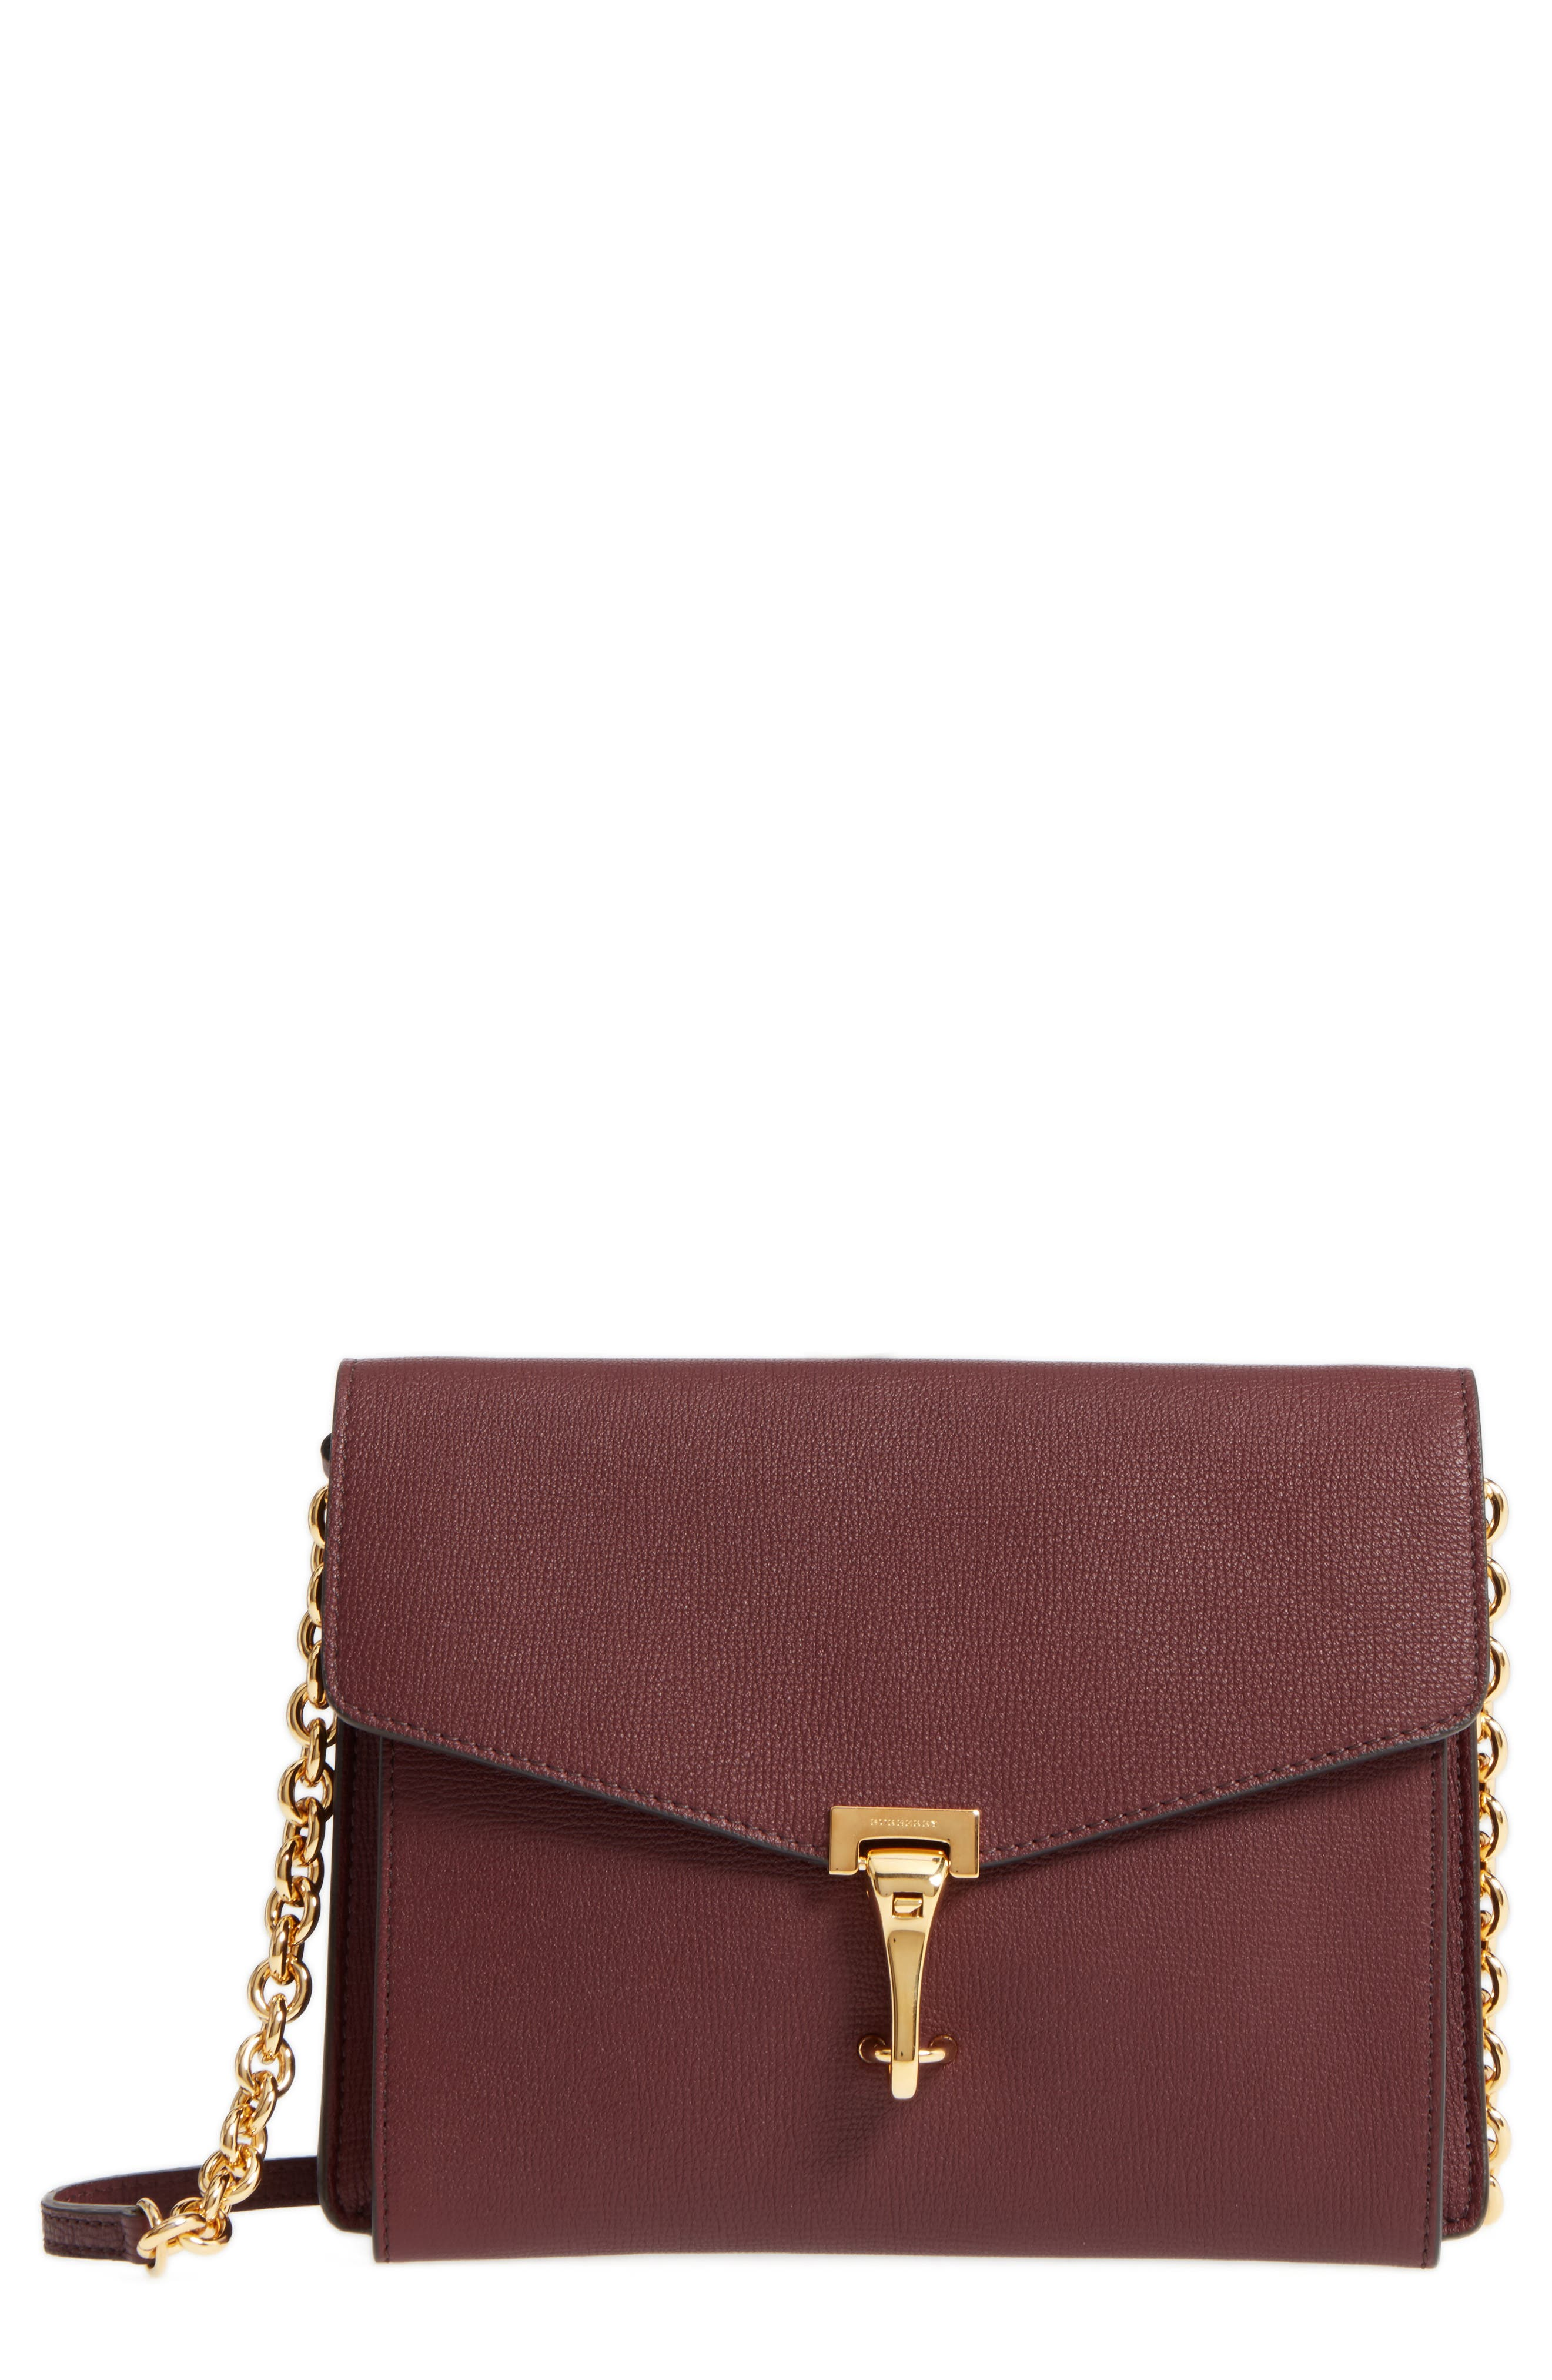 Main Image - Burberry Macken Leather Derby Crossbody Bag